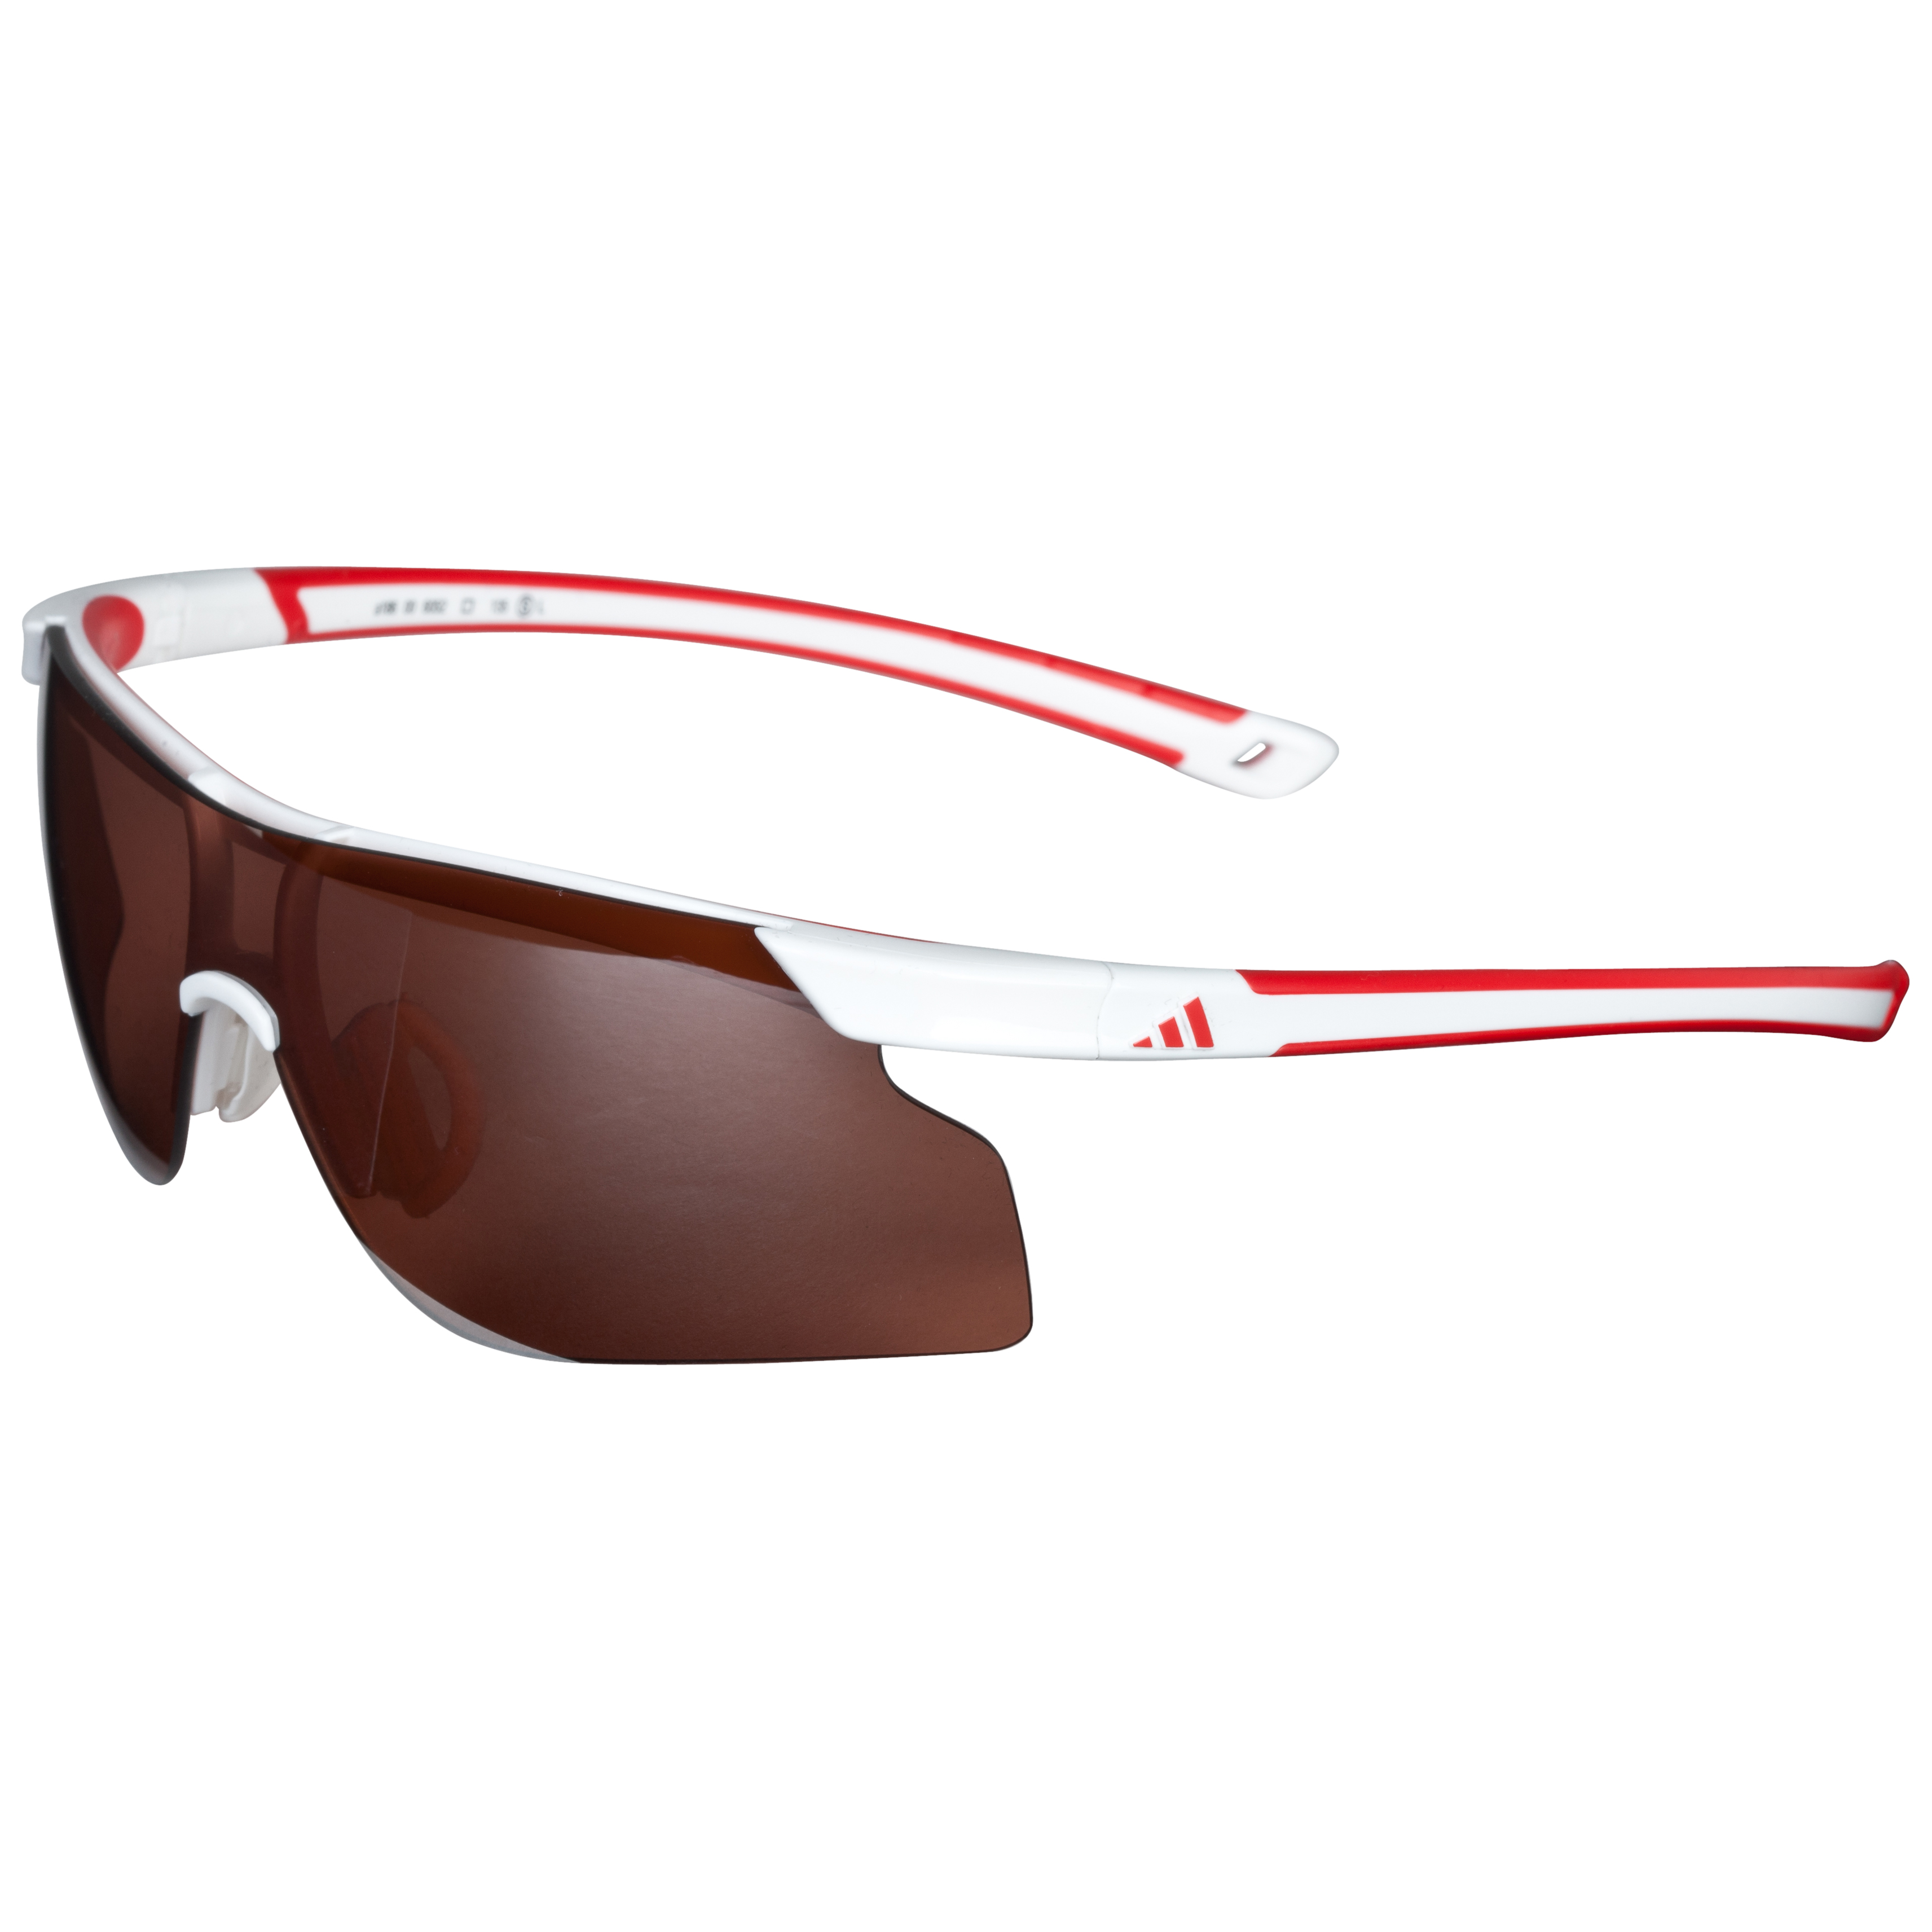 Adidas Adizero Tempo Sunglasses - Team GB (White/Red) - Large